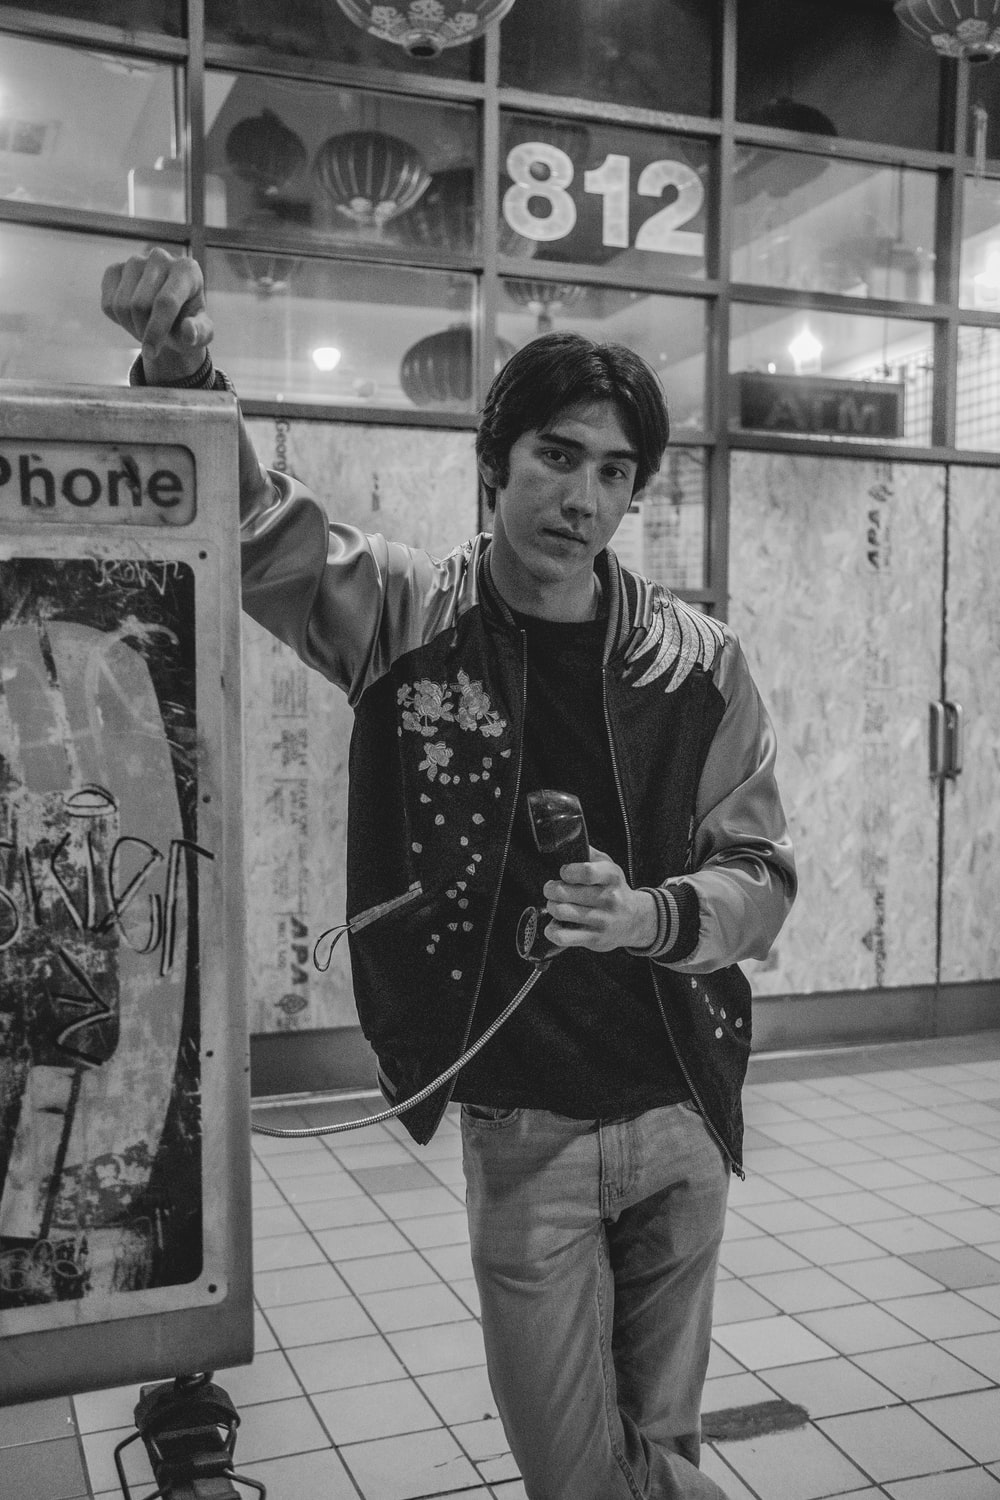 grayscale photo of man in zip up jacket holding telephone